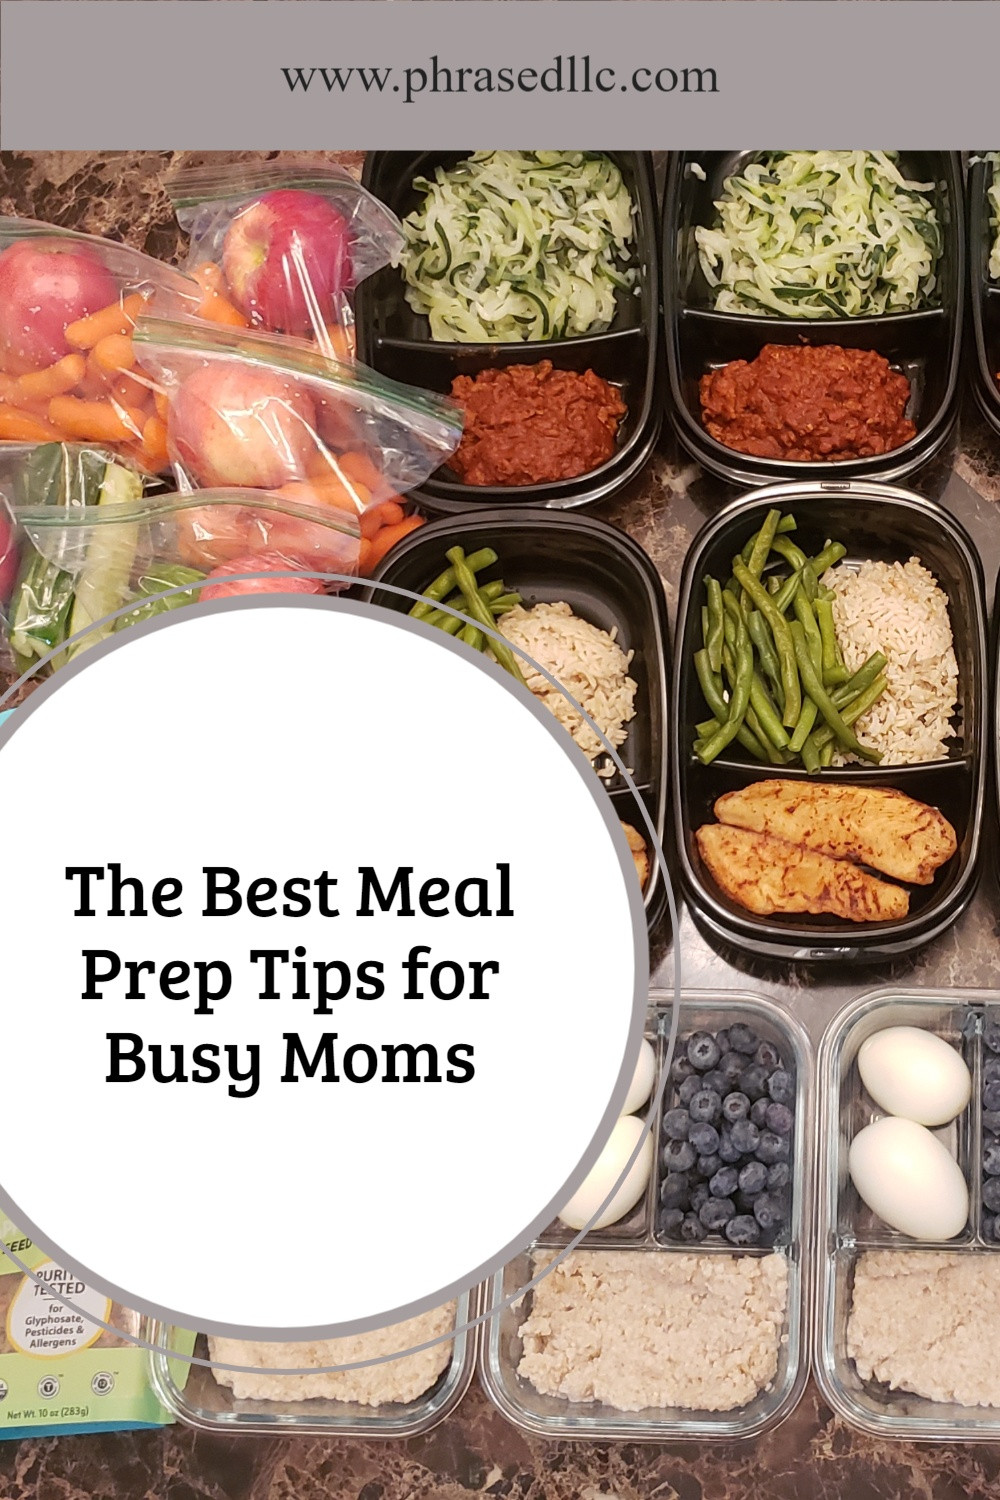 17 of the best meal prep tips that busy moms can use to get healthier and stay that way.